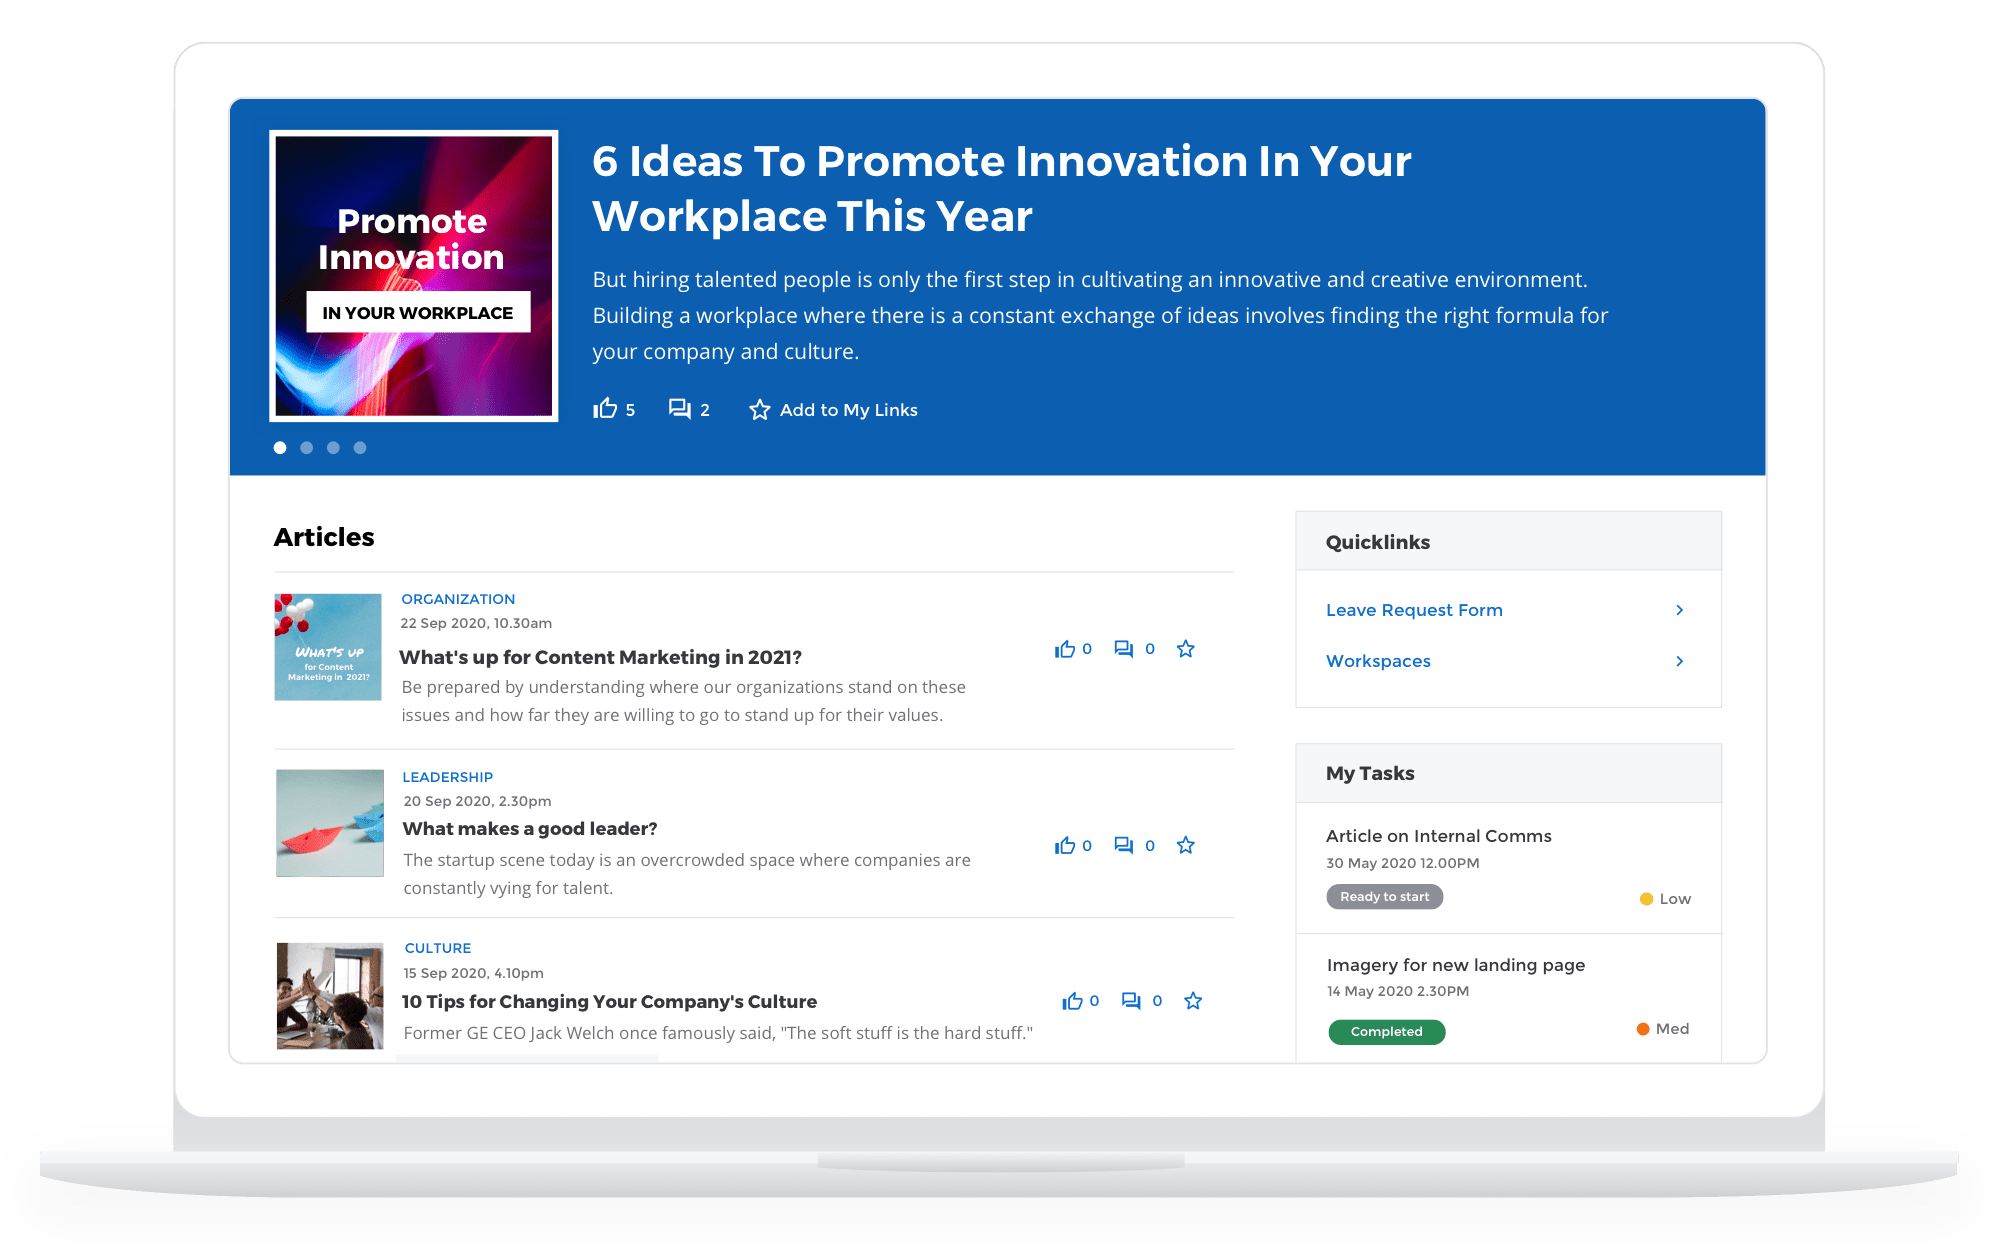 Team members can see their tasks on the homepage